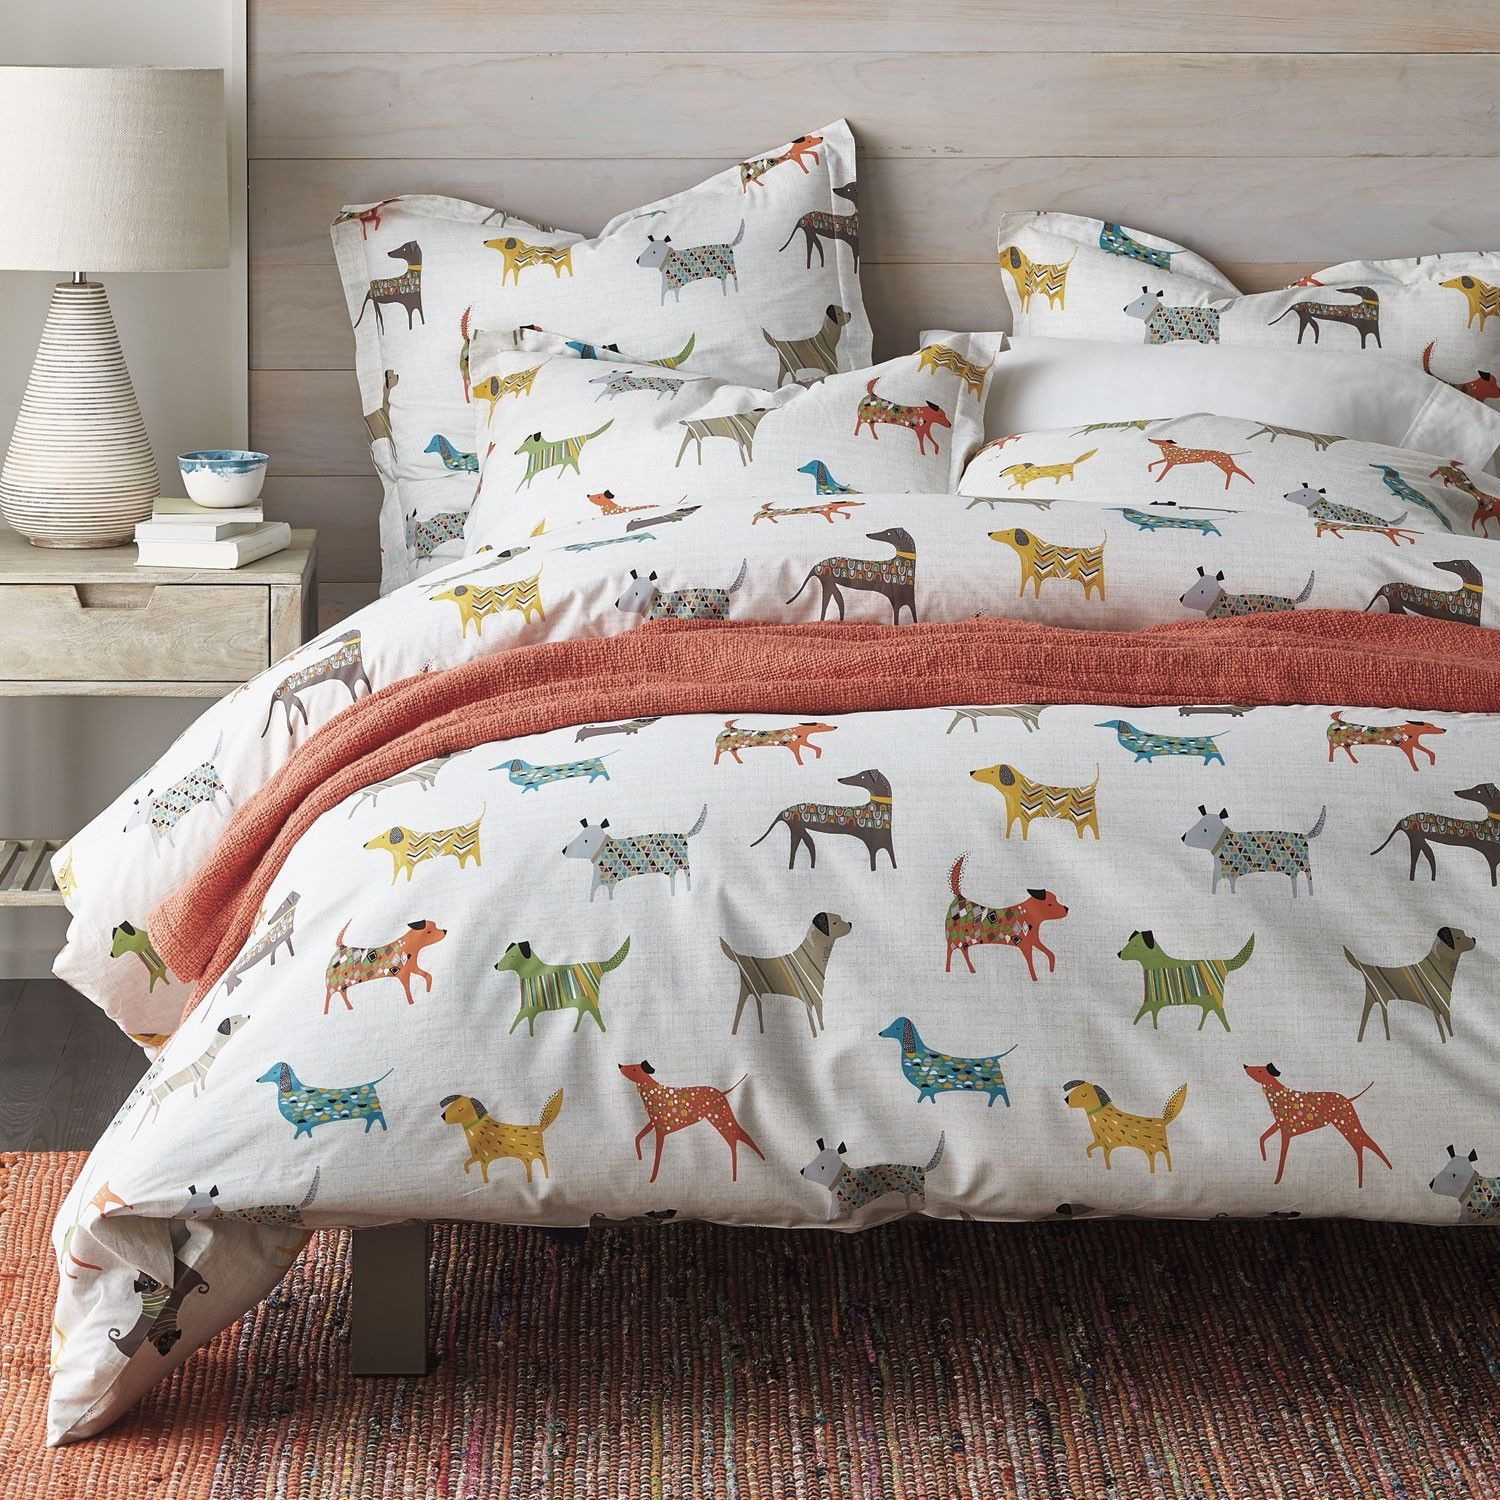 Dog Themed Bedding Sets.Dog Themed Sheets And Bedding Set Featuring Dapper Dogs